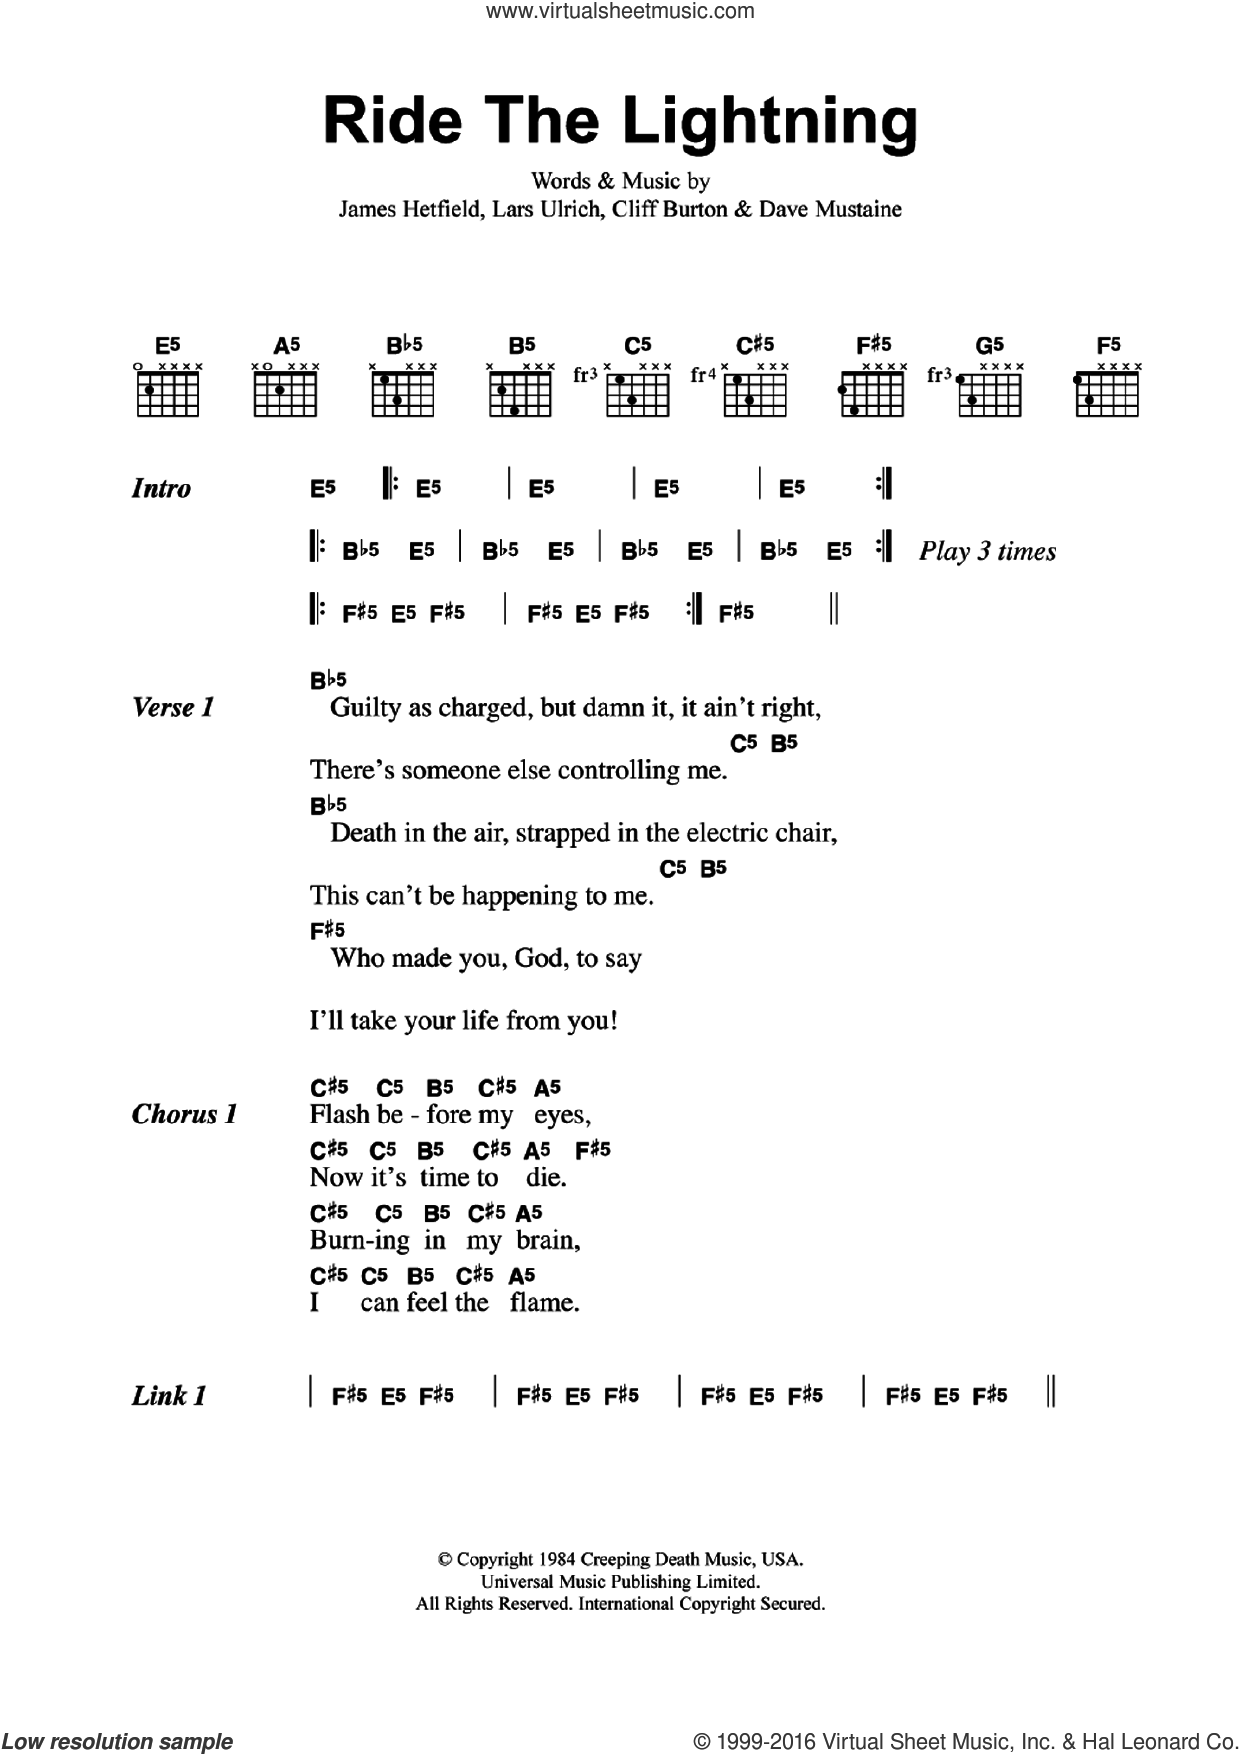 Ride The Lightning sheet music for guitar (chords) by Metallica. Score Image Preview.